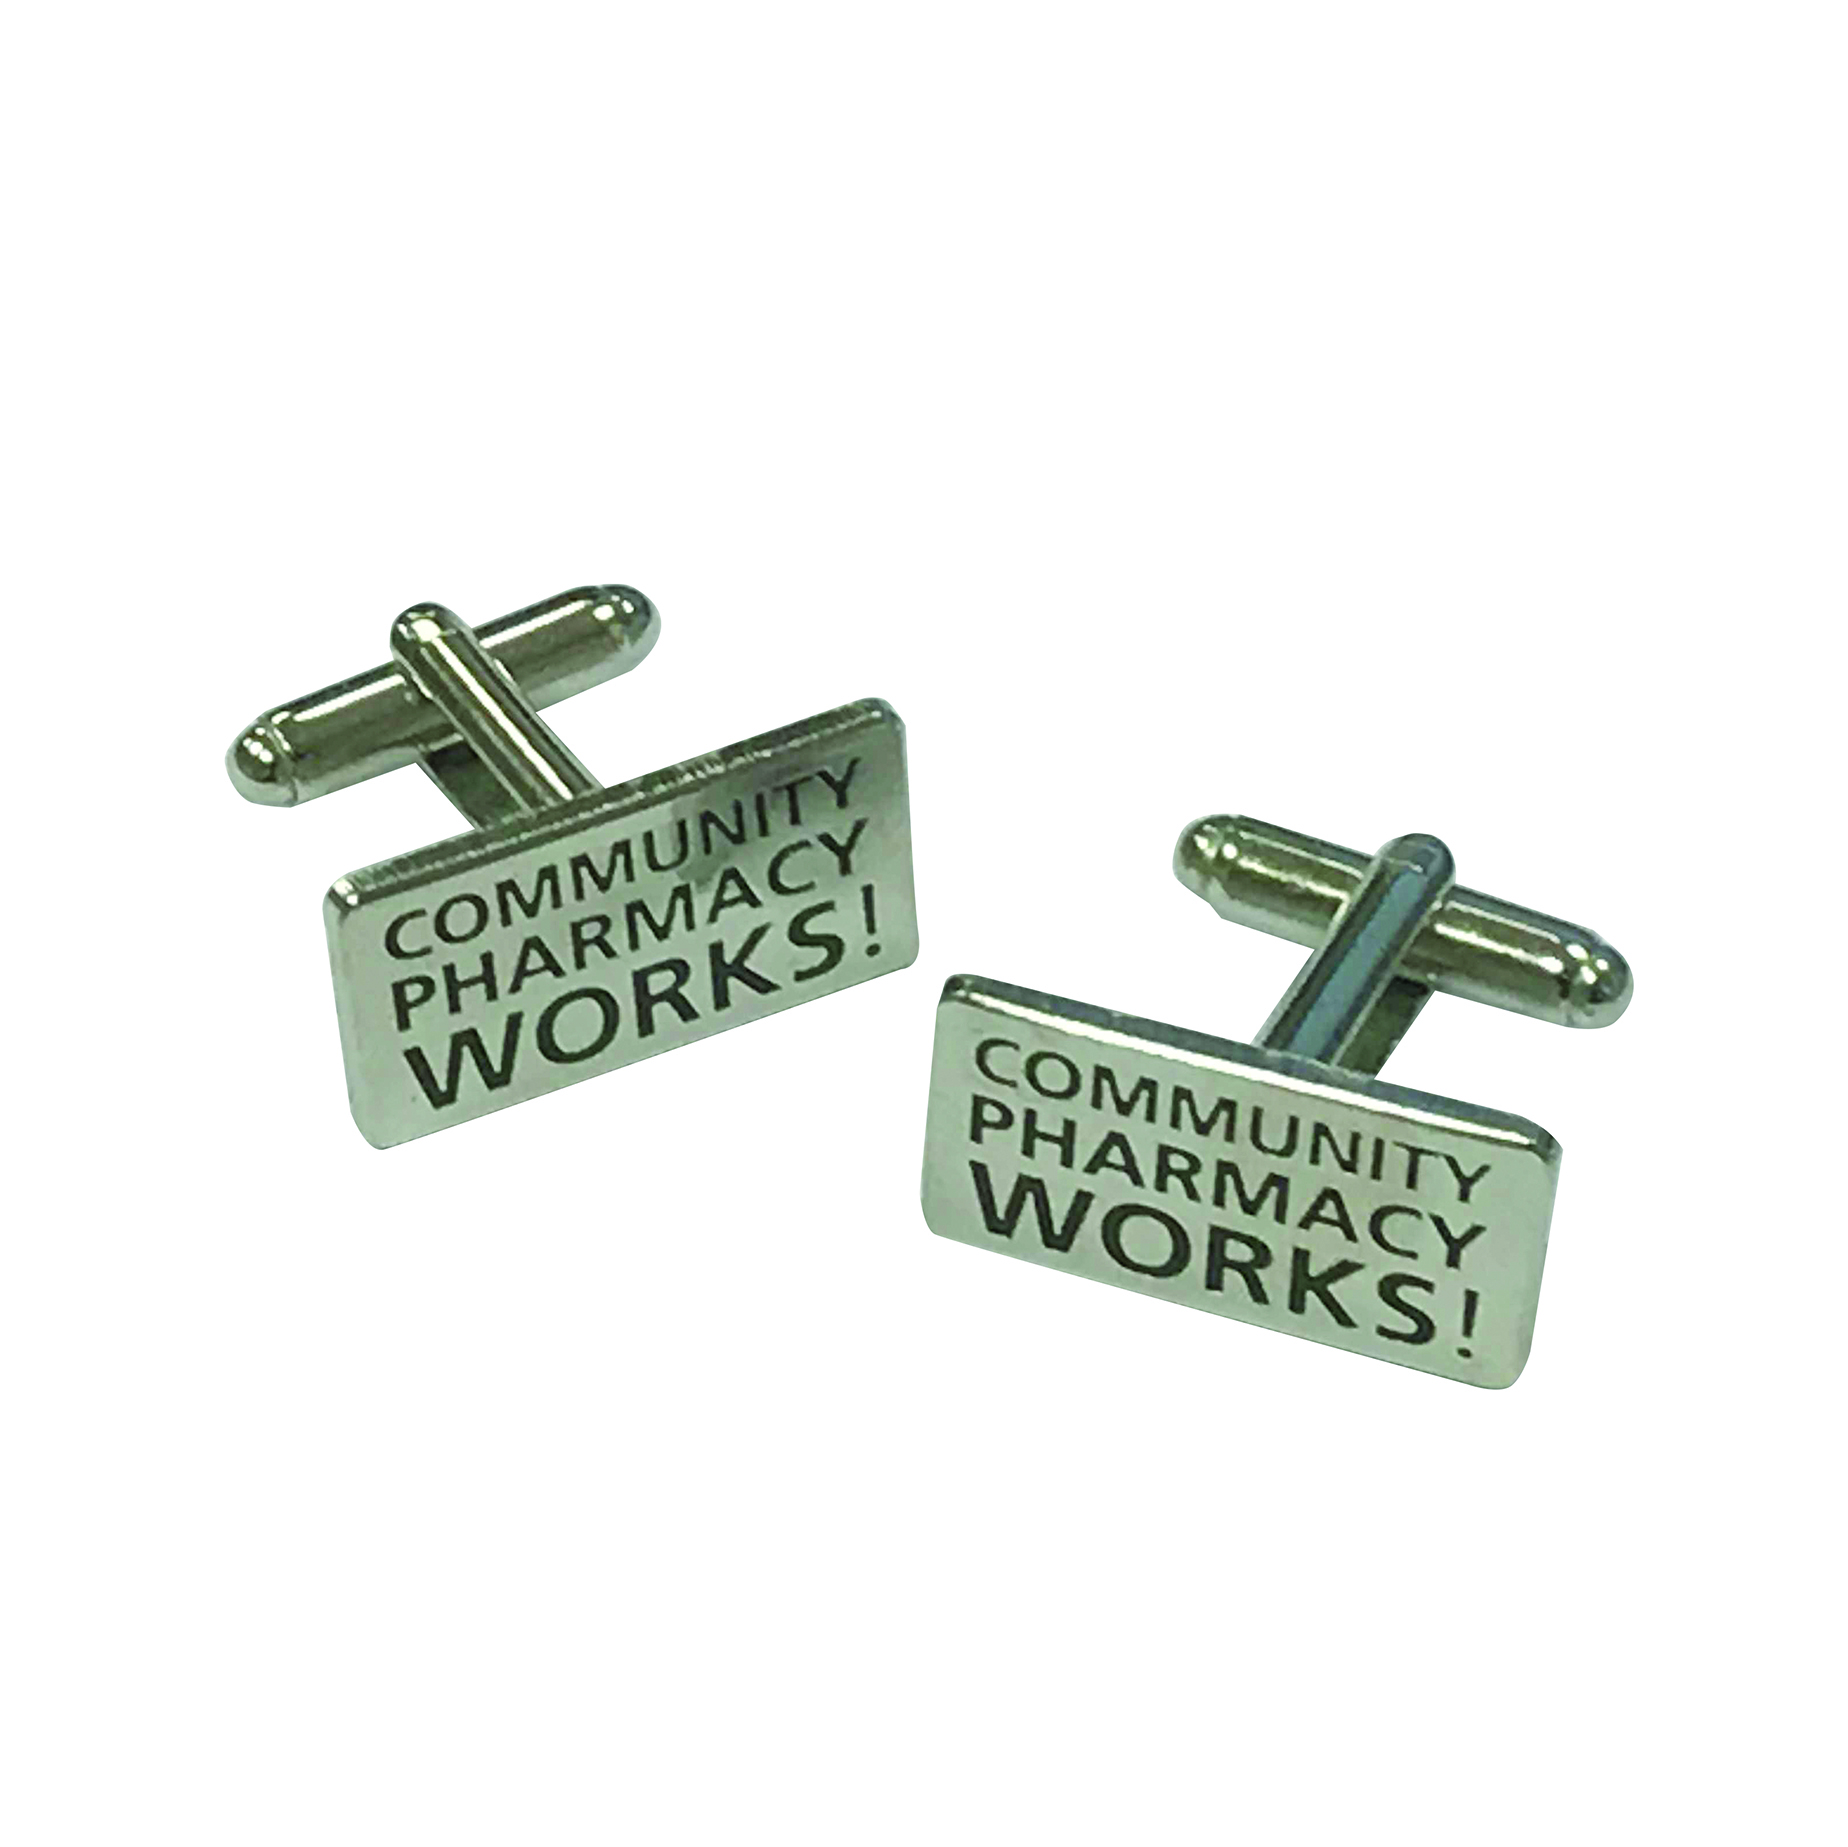 COMMUNITY PHARMACY WORKS! Enamel cufflinks